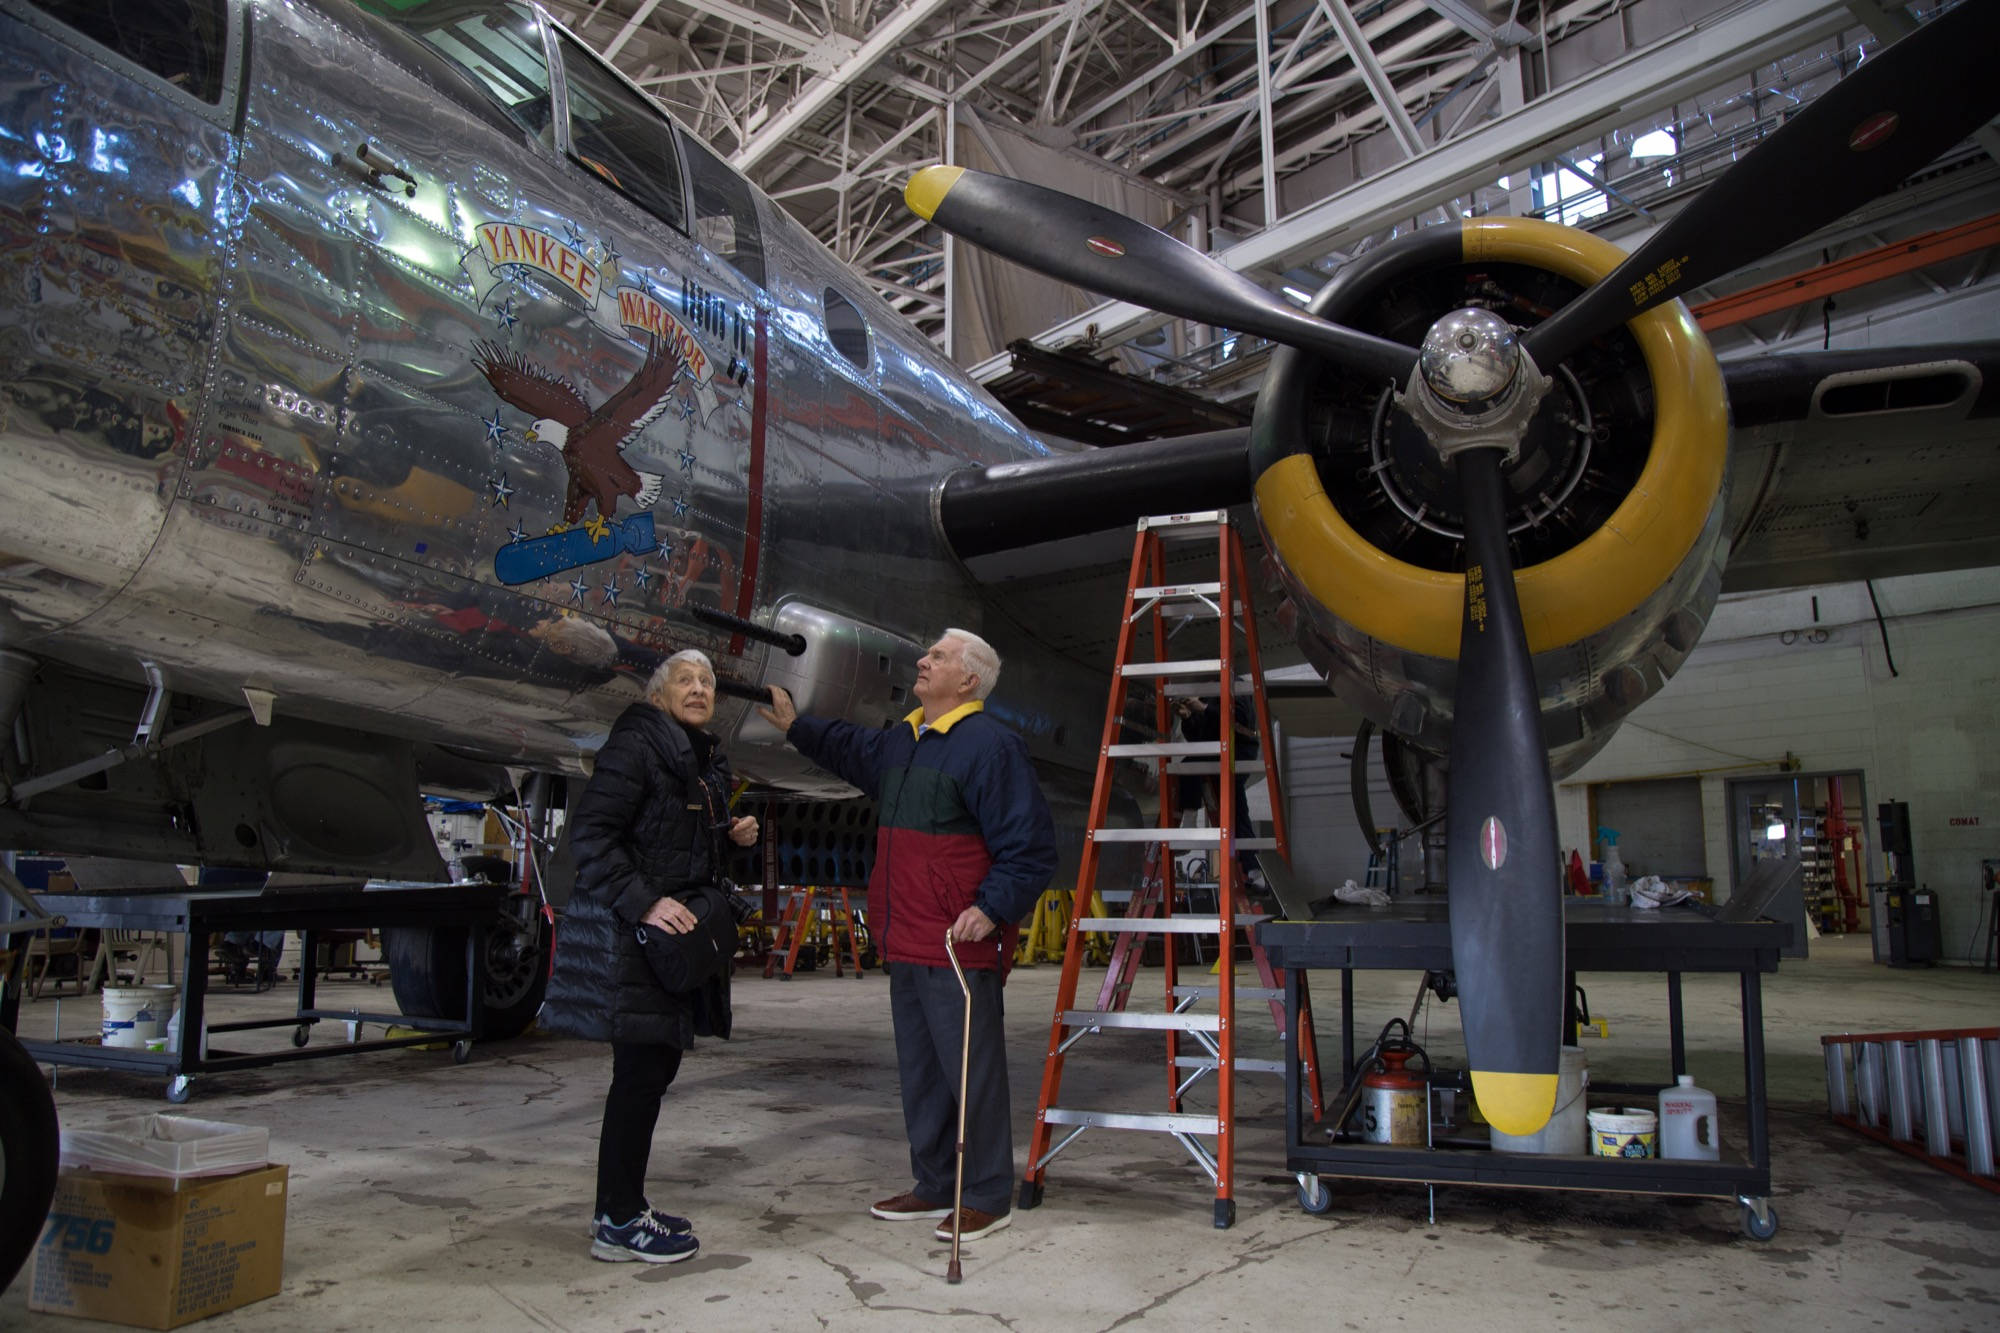 Ruben with her brother, Harry Winston, Jr., in the Yankee Air Museum's storage as they look over bomber planes created at Willow Run.